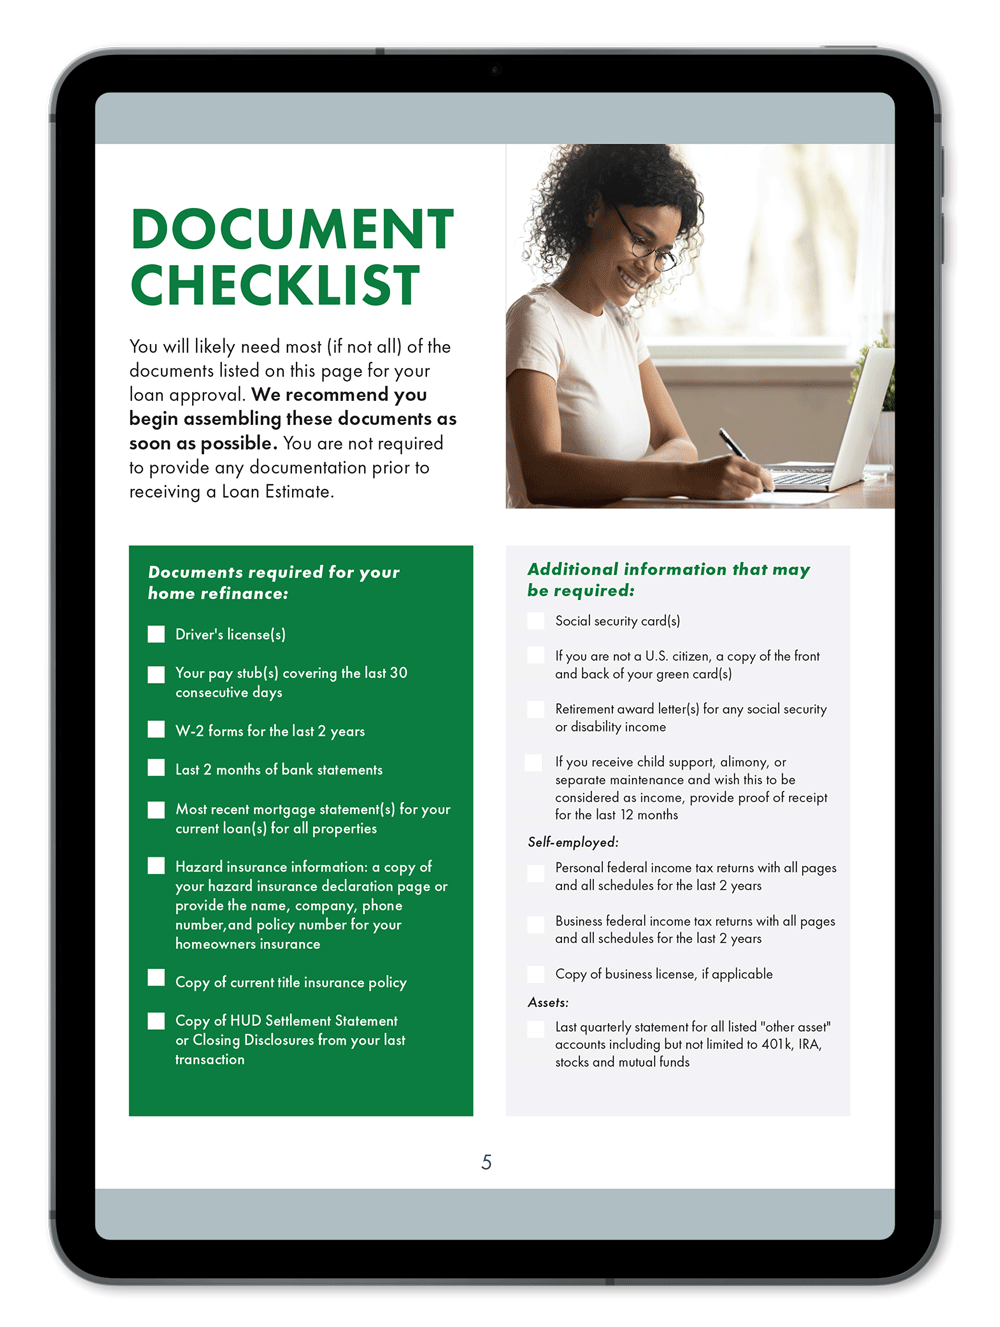 document-checklist-ipad-mockup